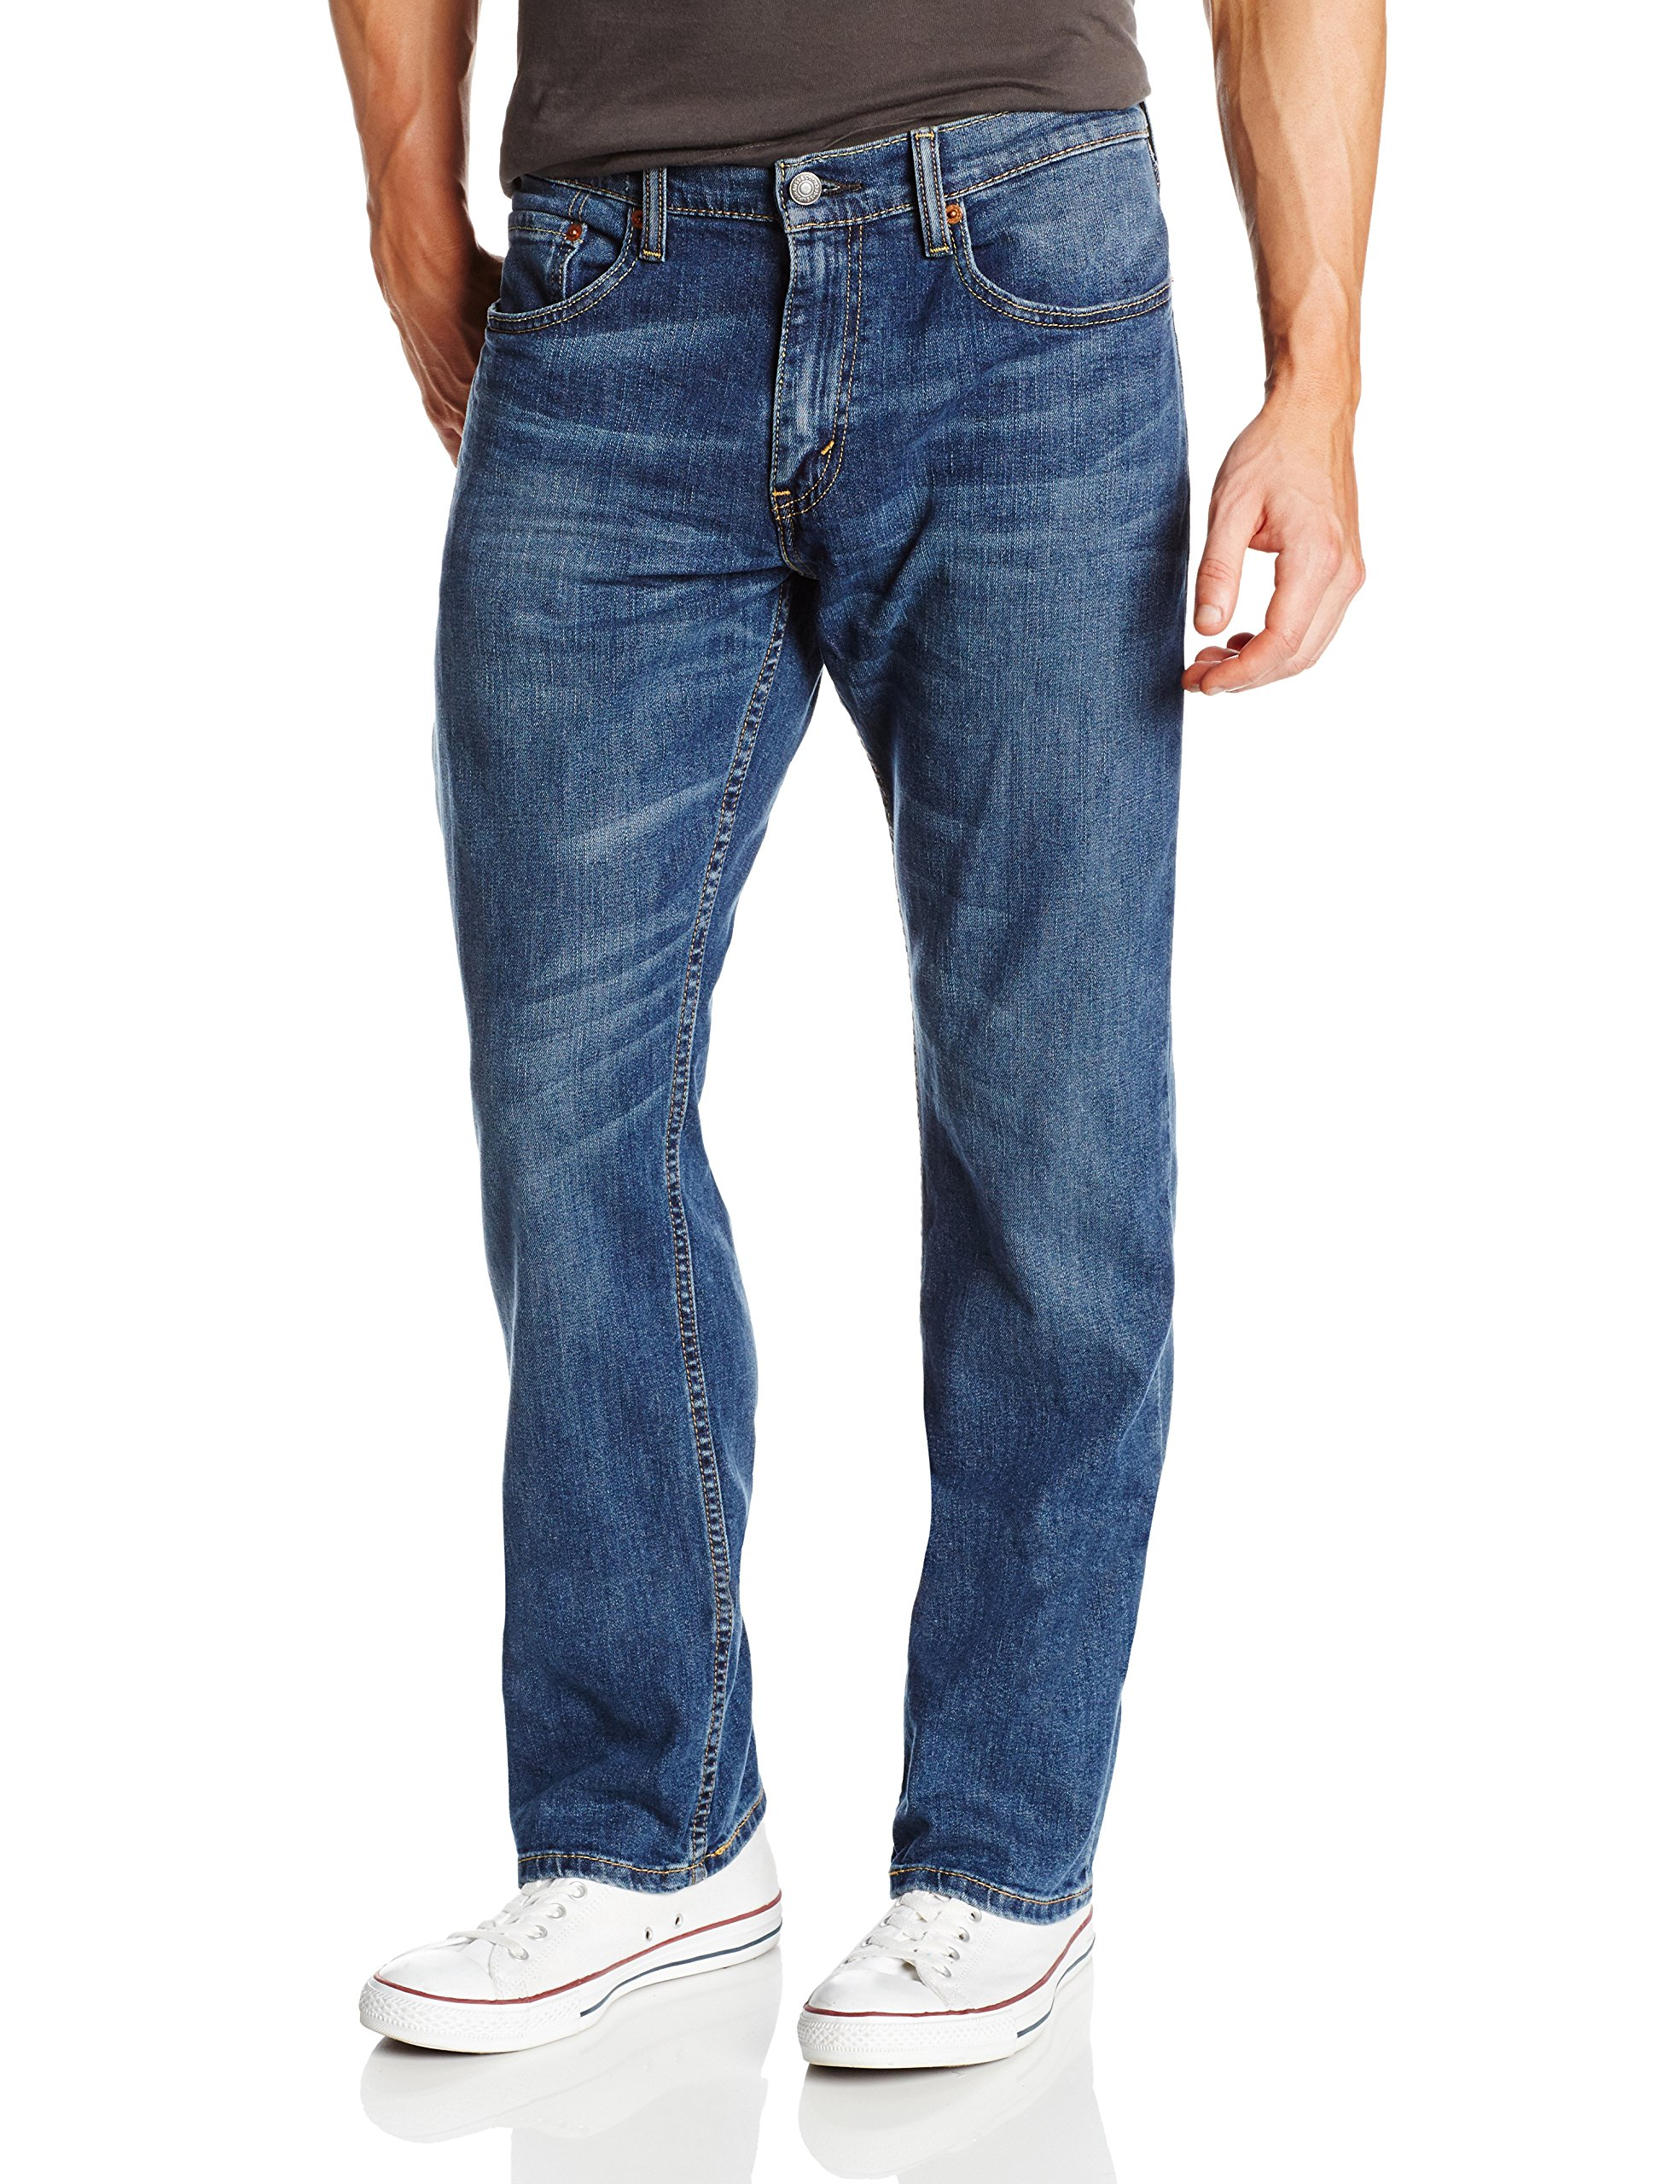 Levi's Men's 559 Relaxed Straight Fit Jean - 38W x 30L - Steely Blue - Stretch